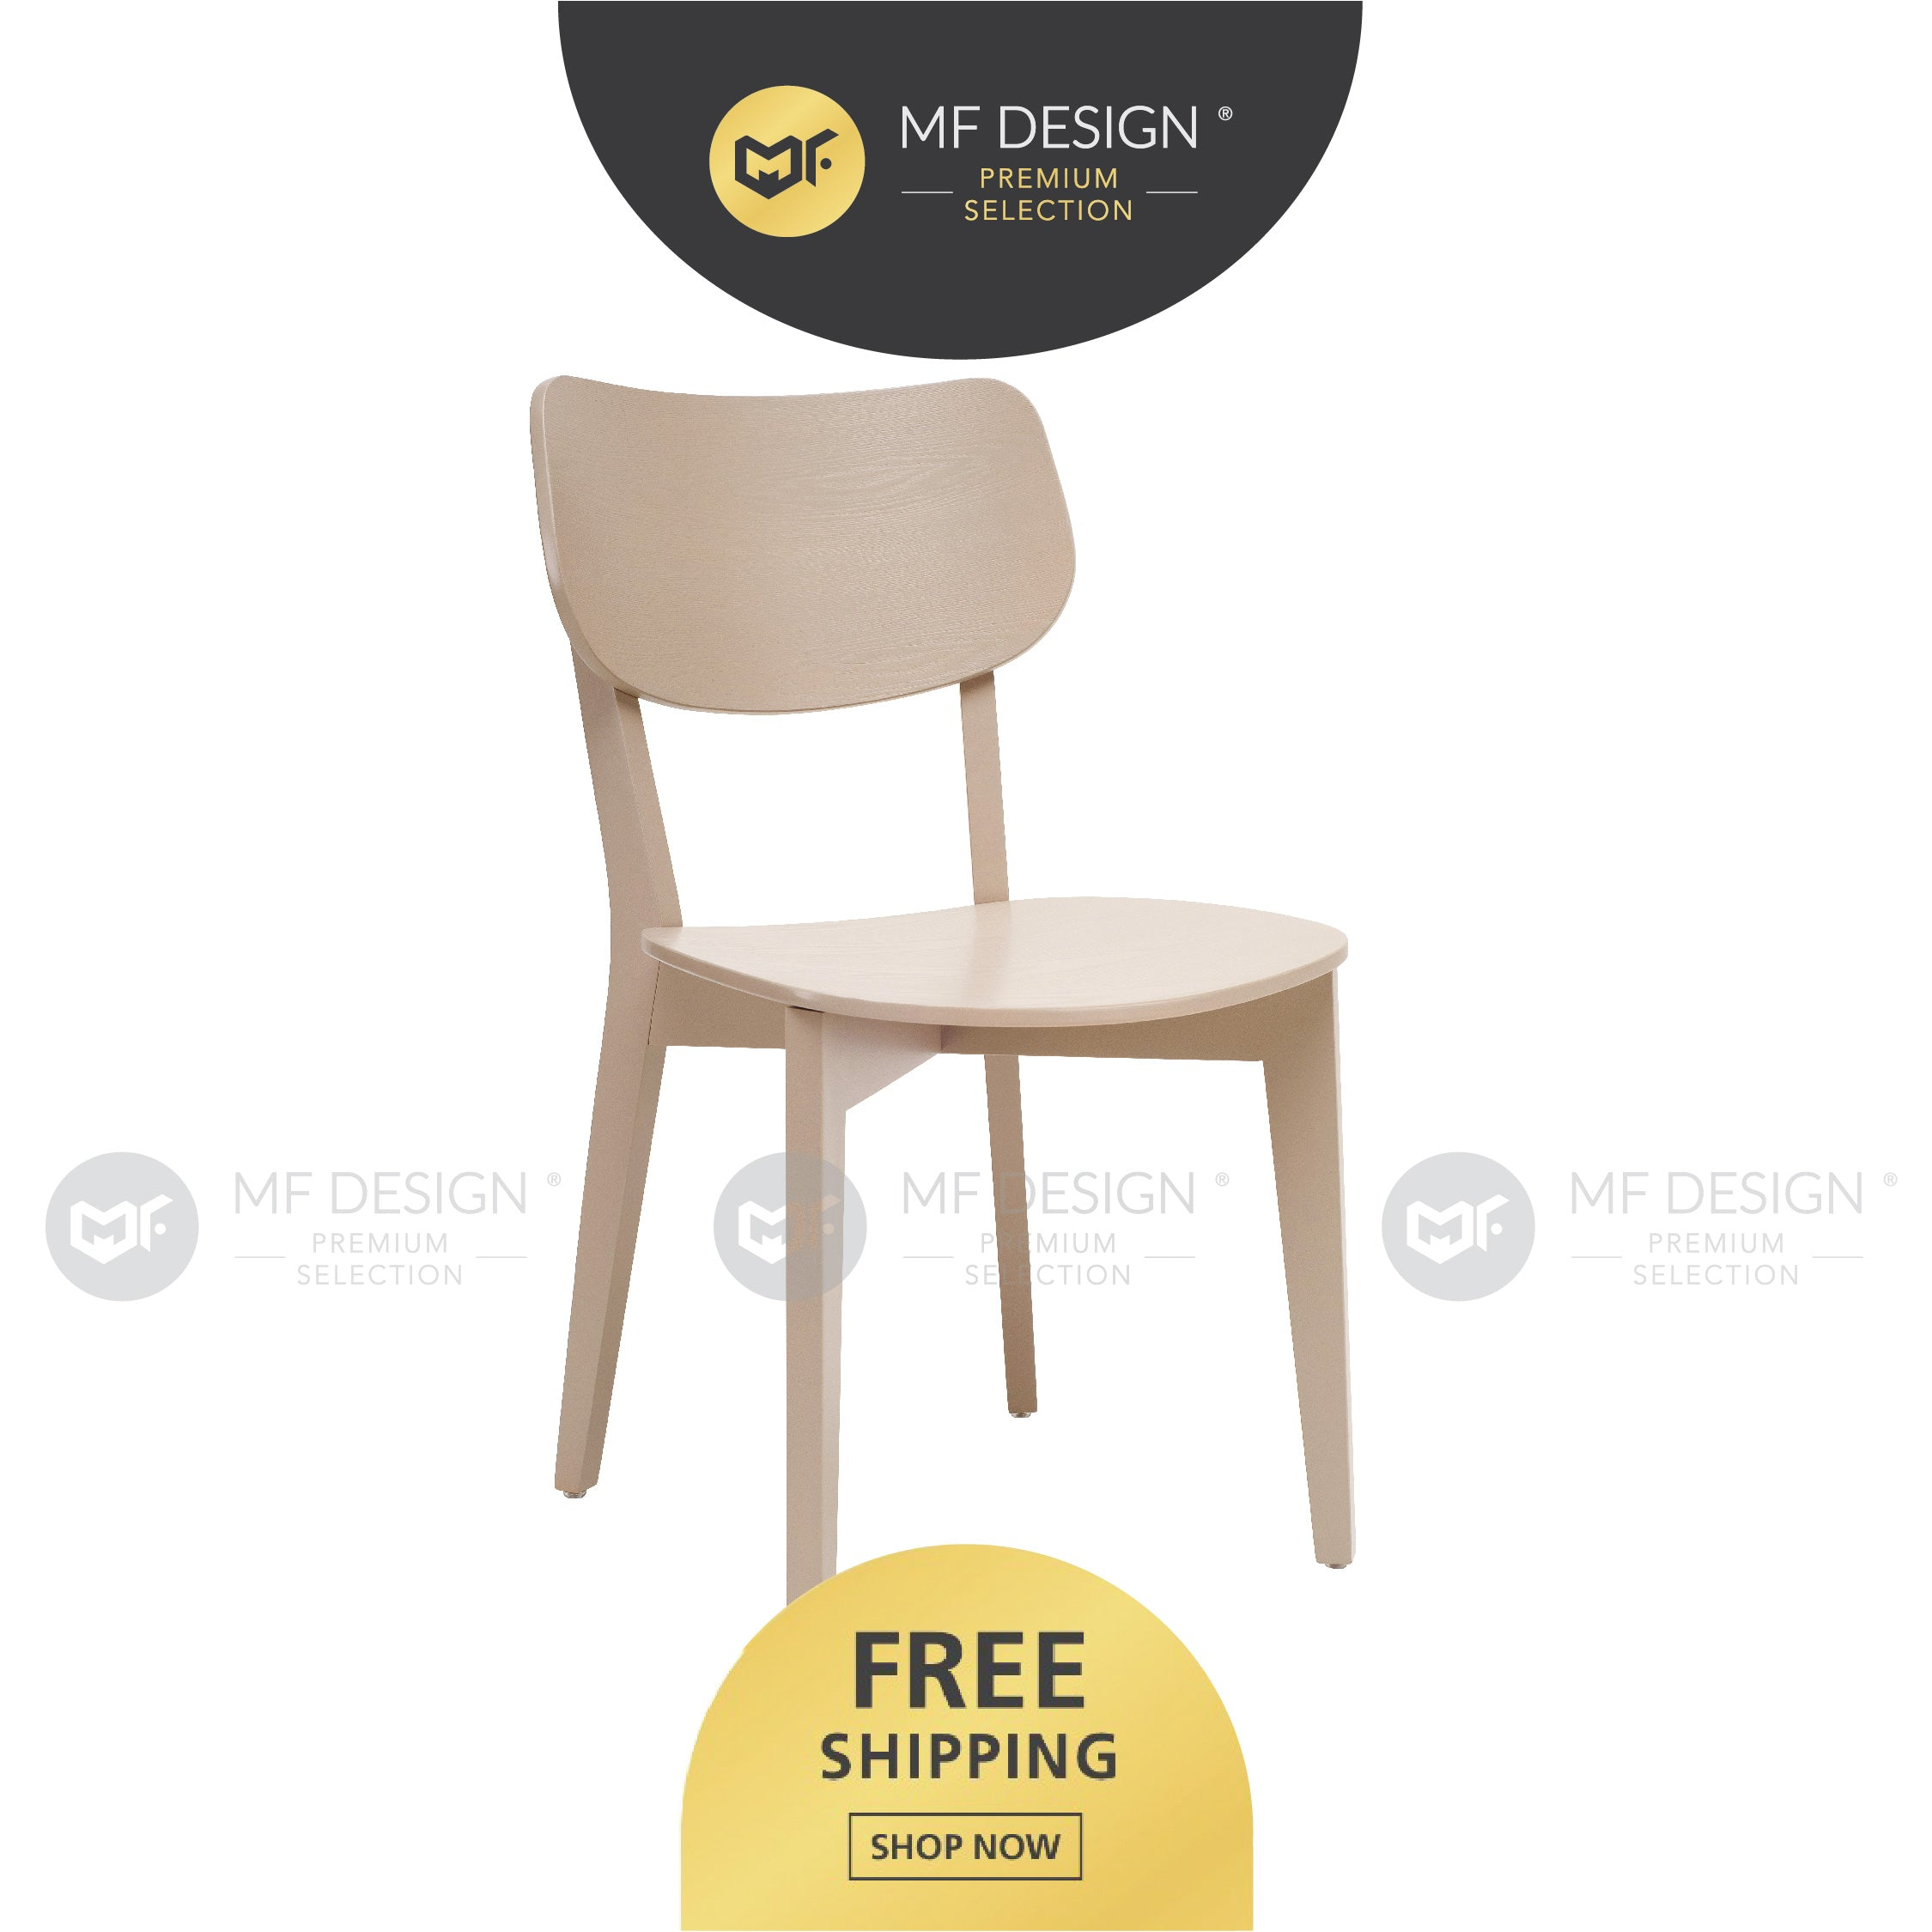 MFD Premium Griffin Dining Chair / Wooden Chair / Solid Rubber Wood / Kerusi Makan Kayu Getah / Living Room